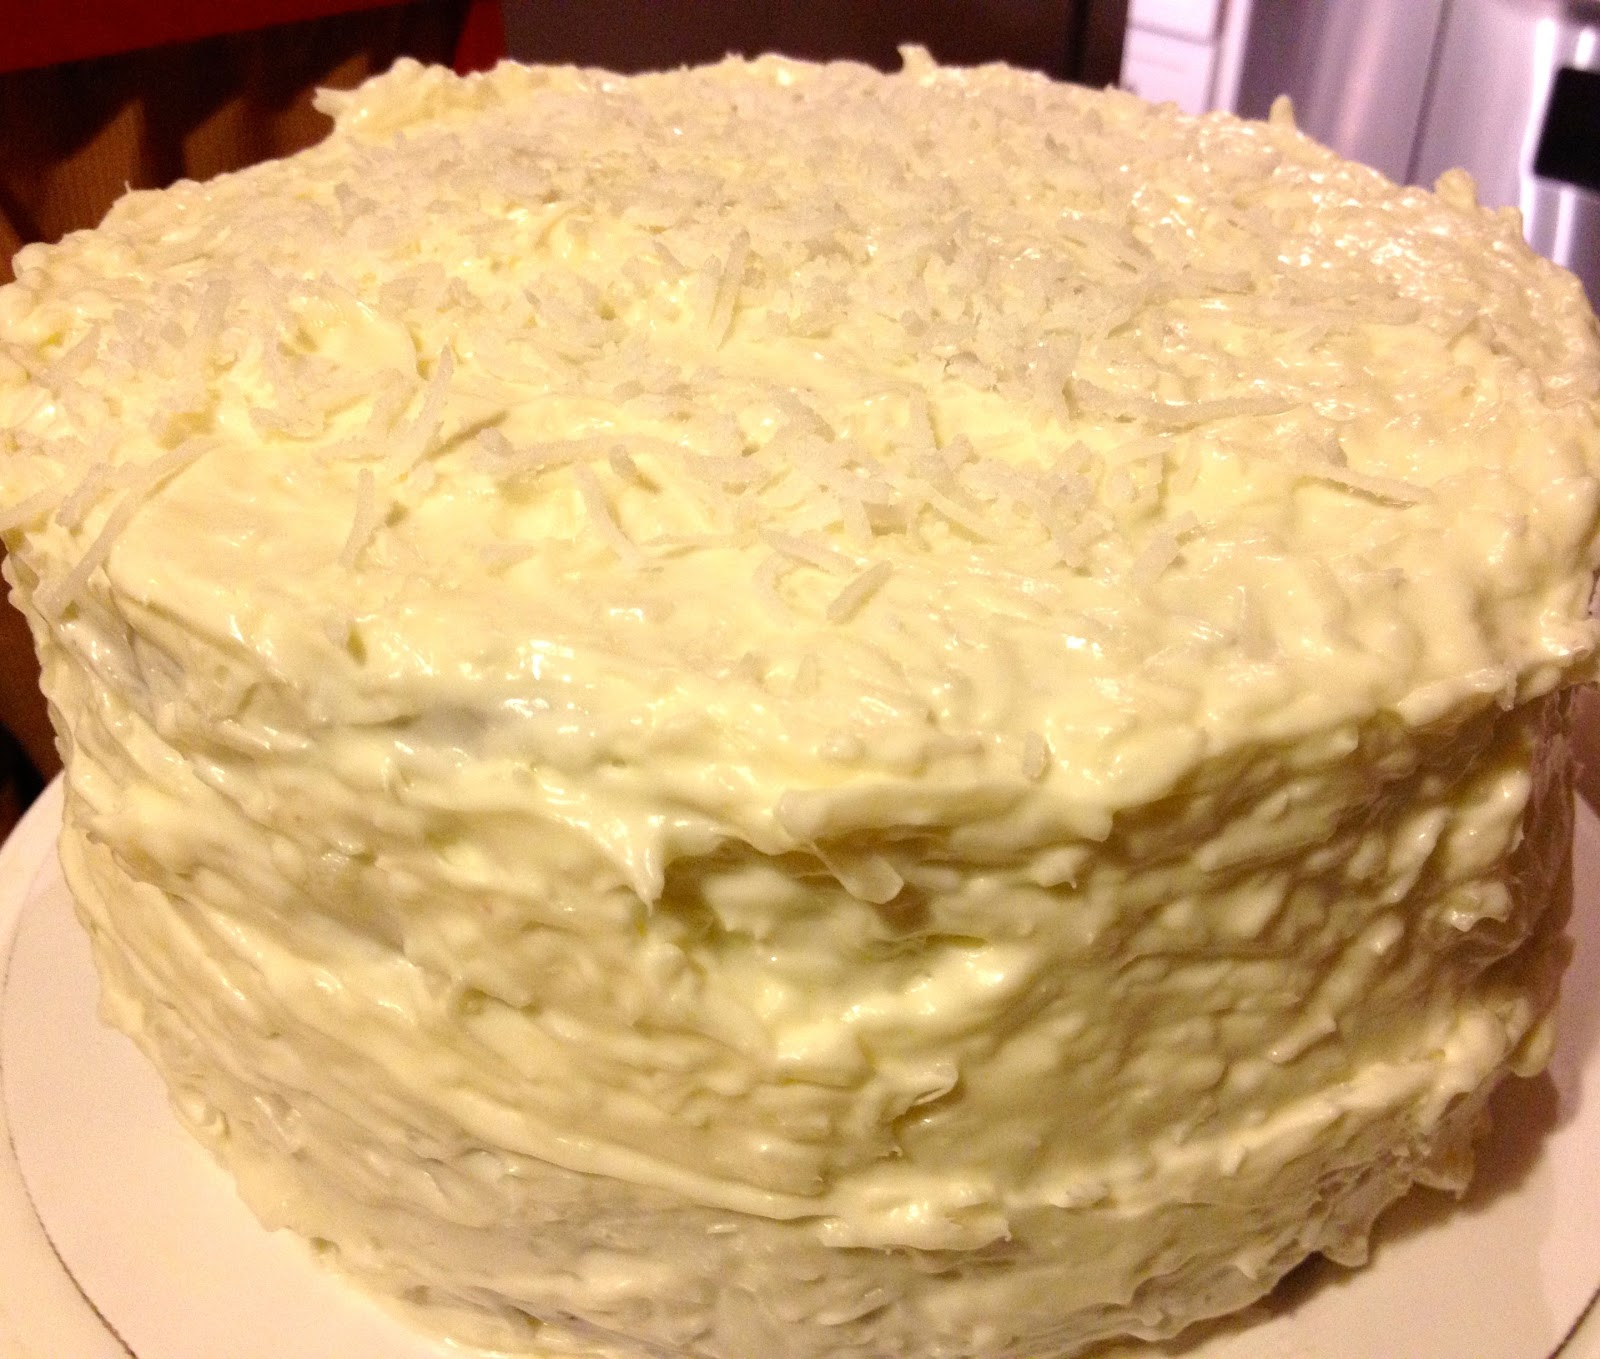 Heidi's Mix: Red Velvet Cake With Coconut Cream Cheese Icing